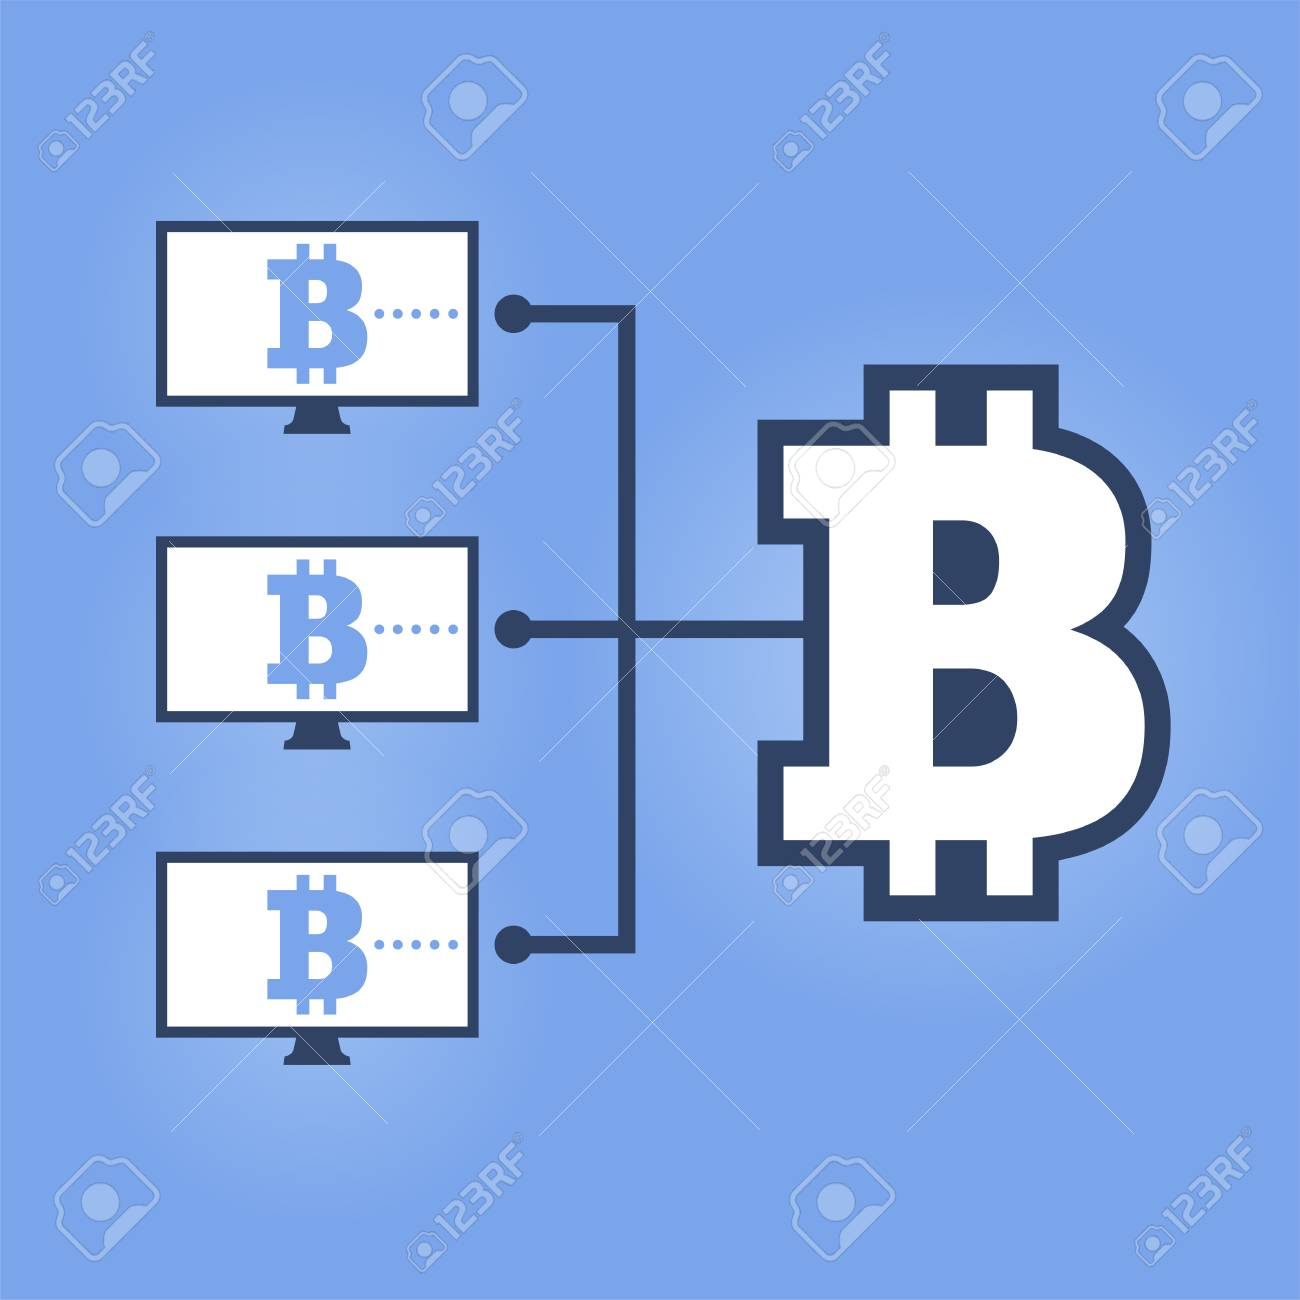 How work cryptocurrency network flat scheme illustration  Computers